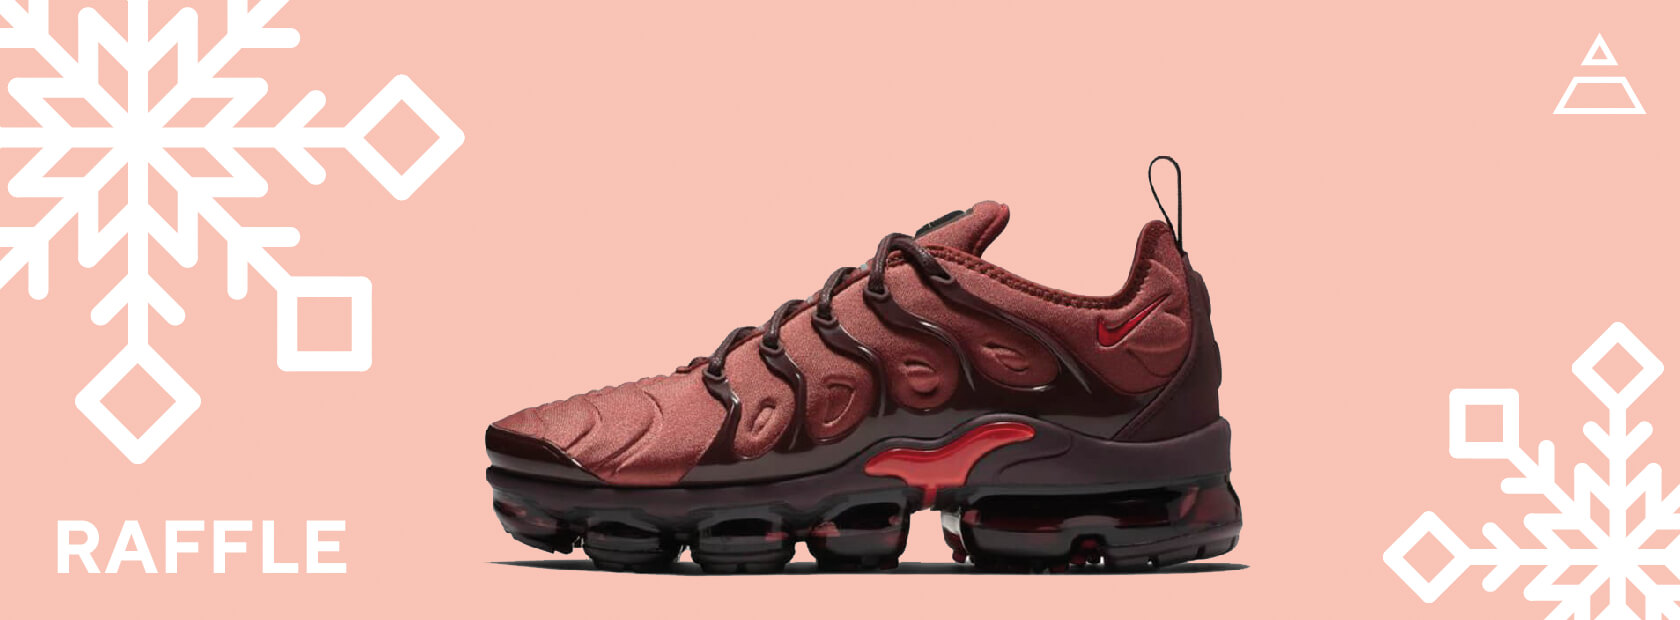 It`s Raffle time again! This time you can win a Nike Wmns Air Vapormax Plus!